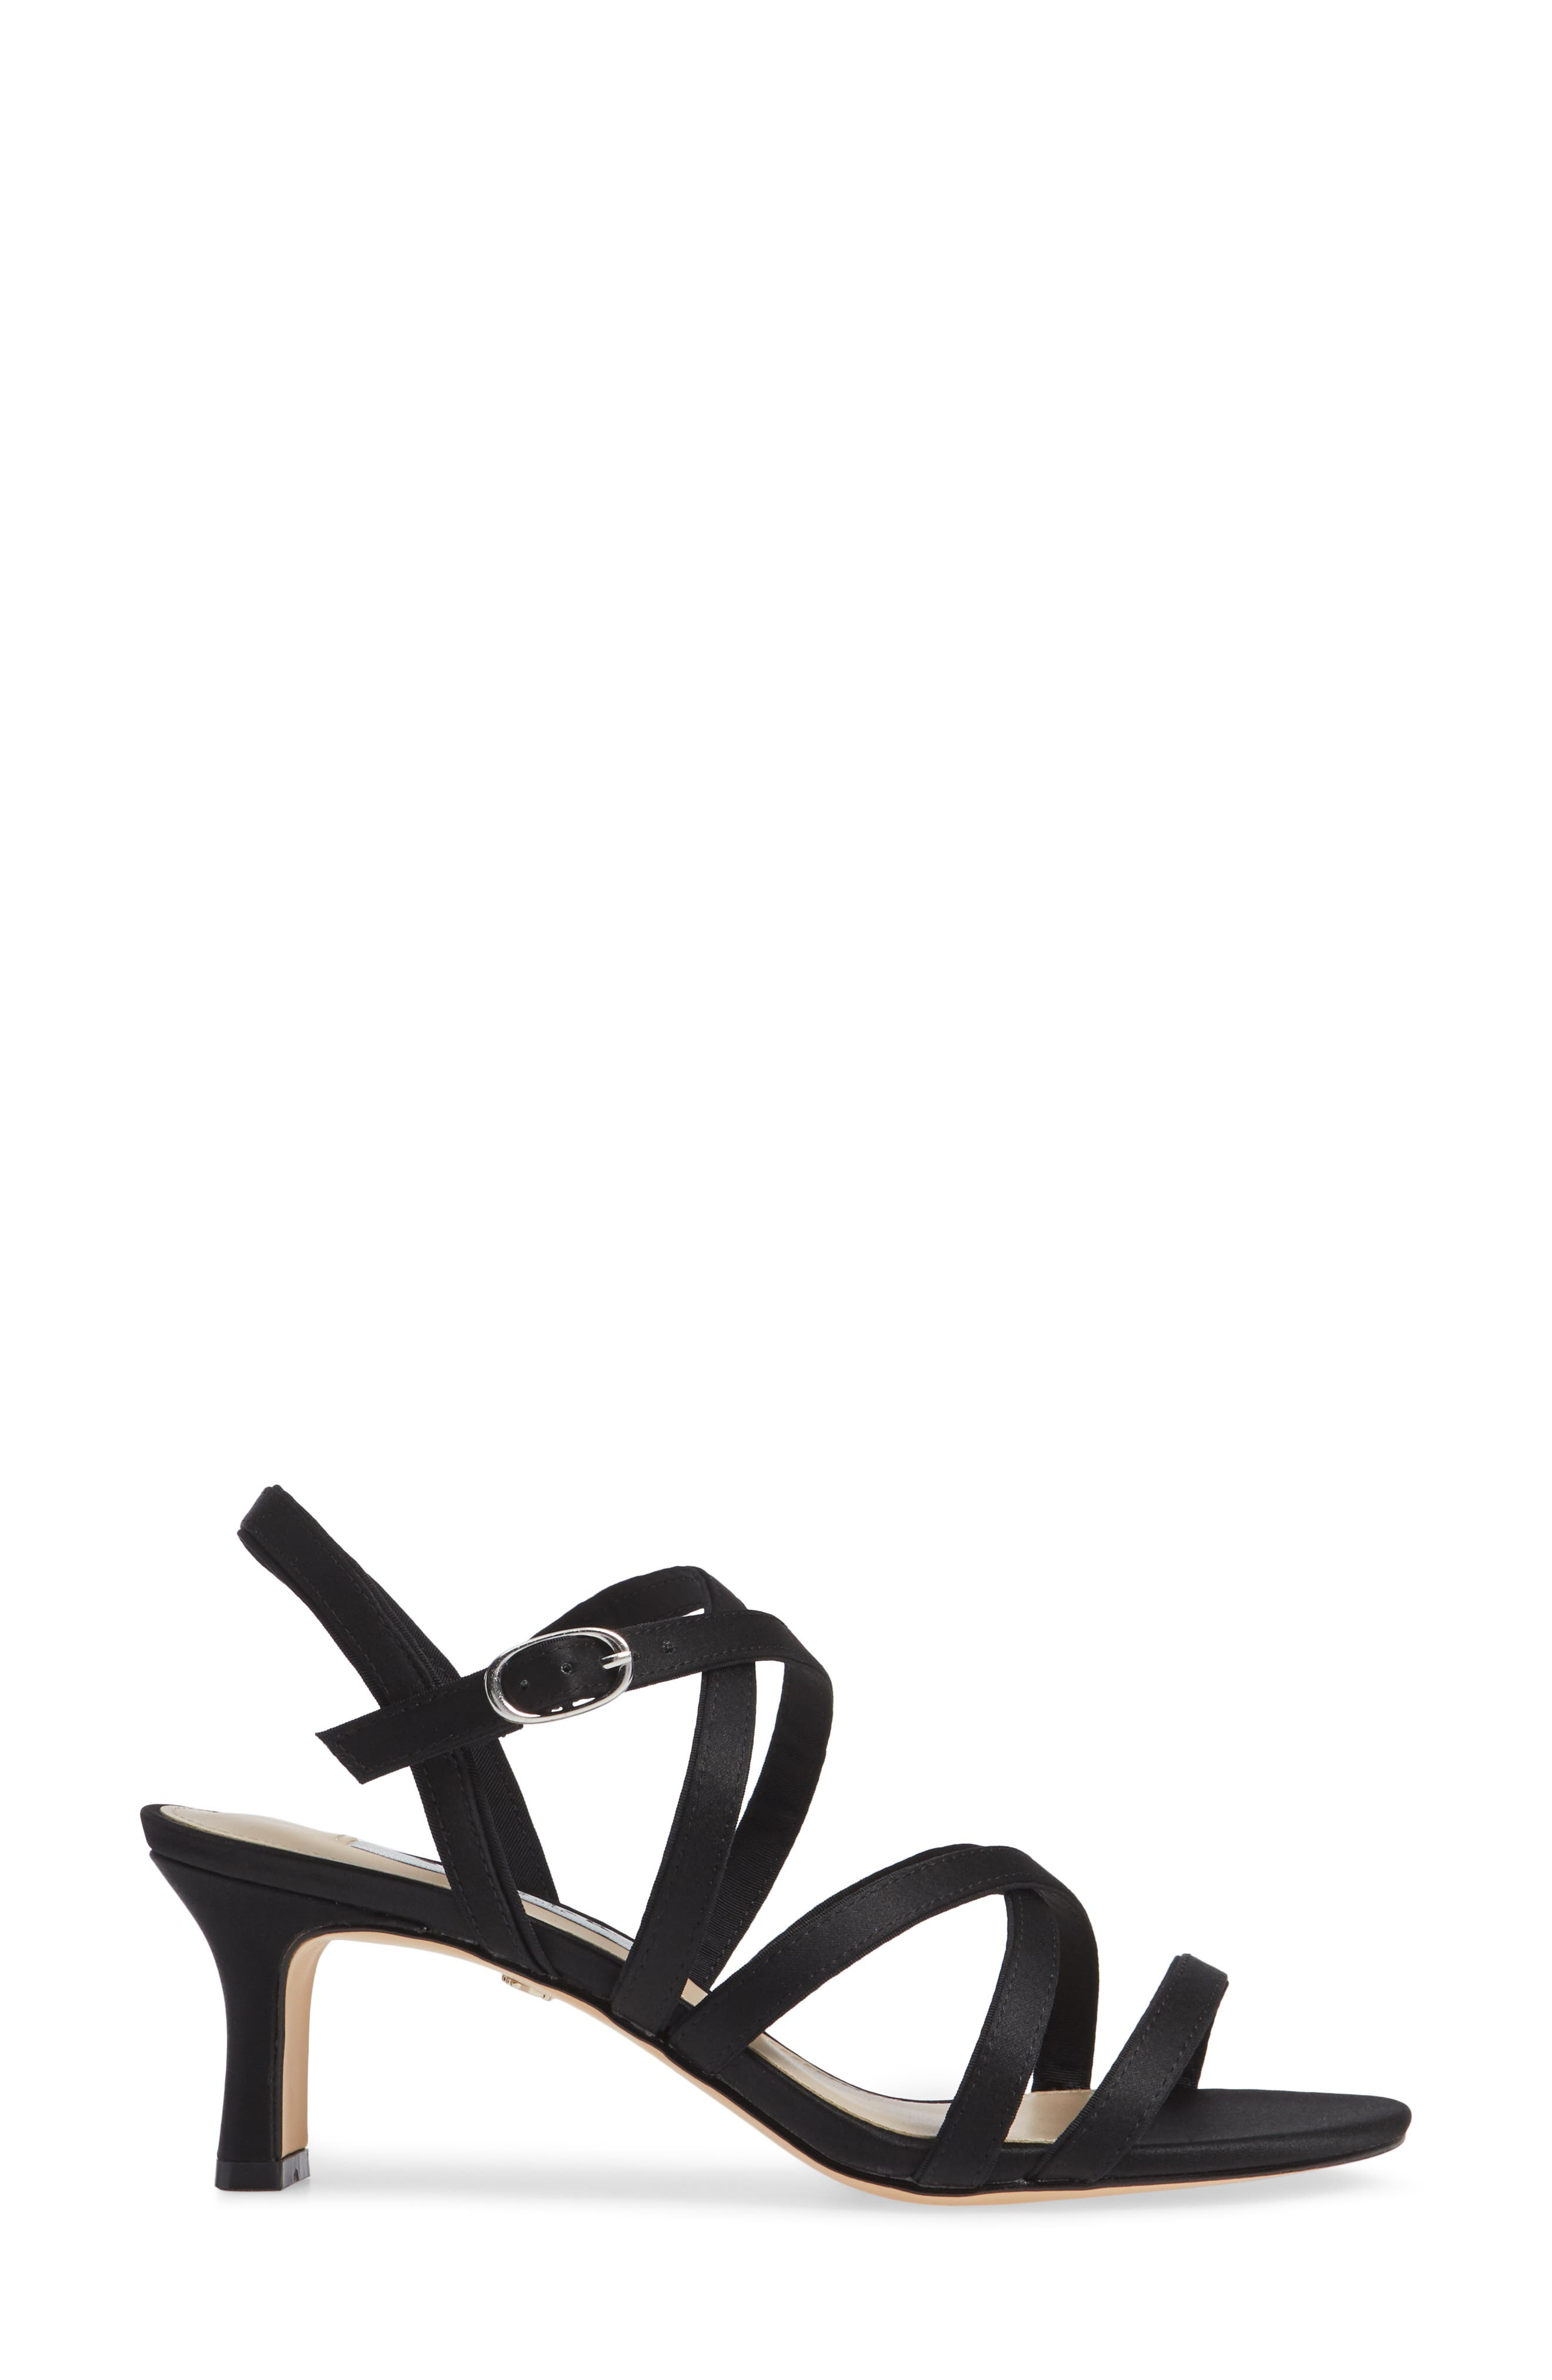 Genaya Strappy Evening Sandal,                             Alternate thumbnail 3, color,                             BLACK SATIN